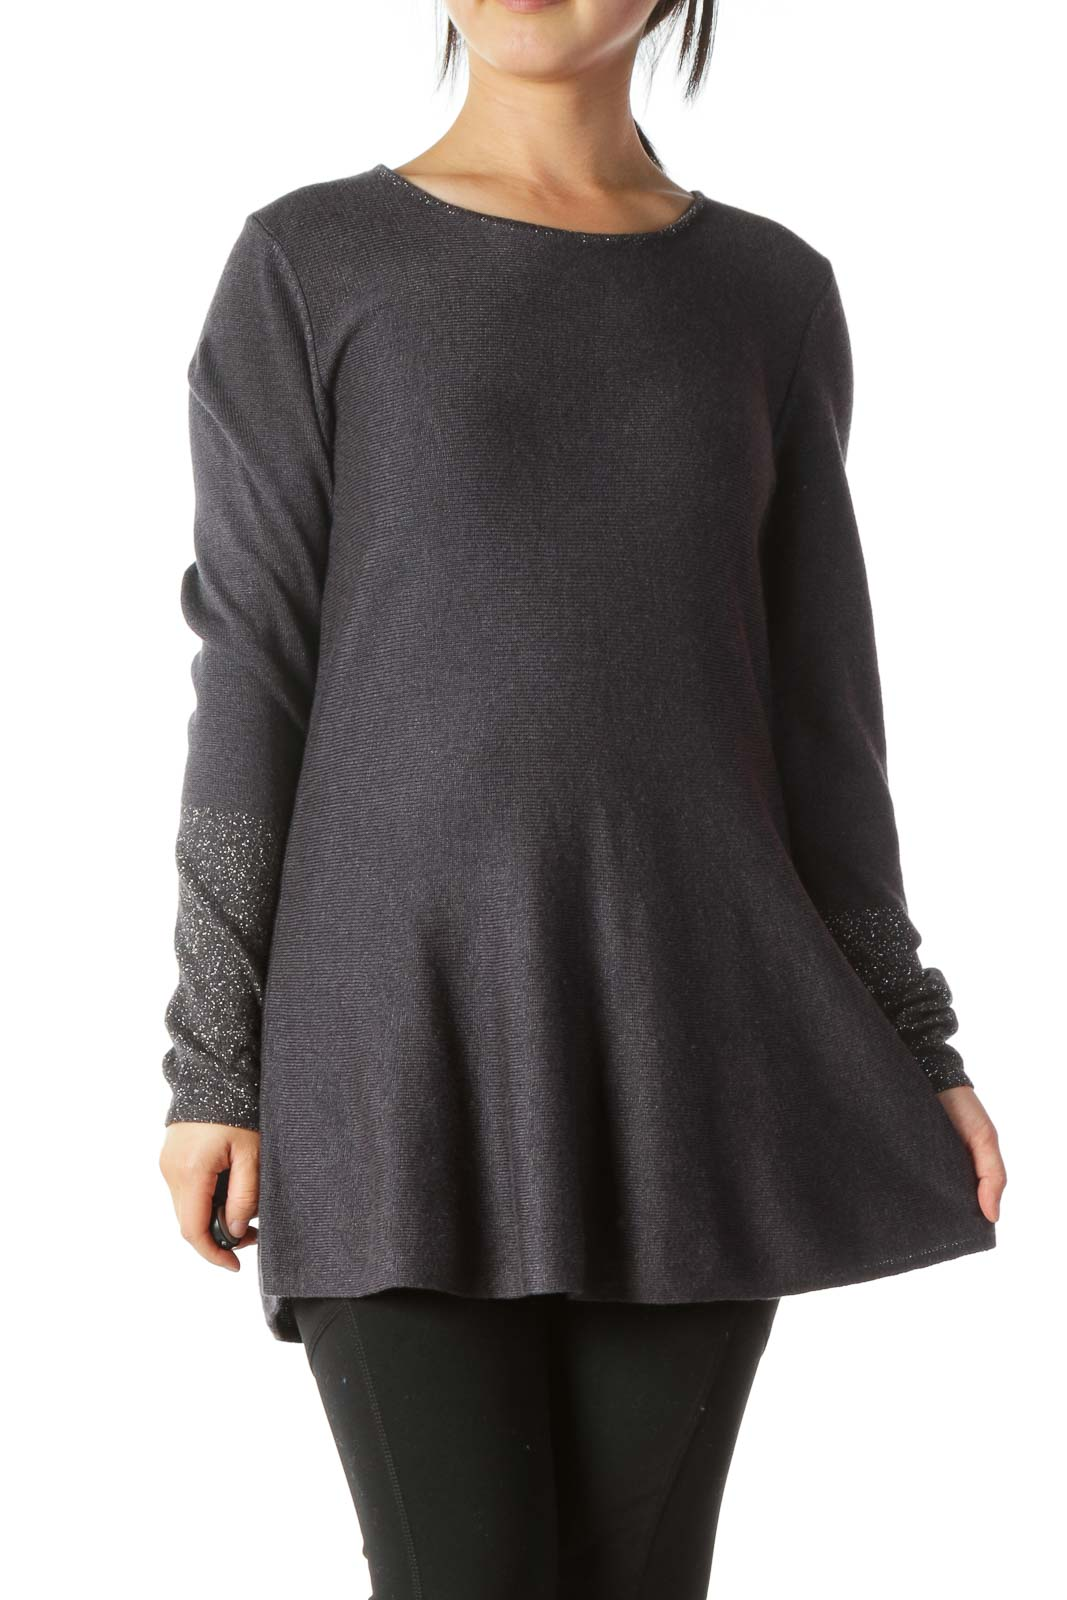 Gray Silver-Threading-Accents A-Line Knit Top Front